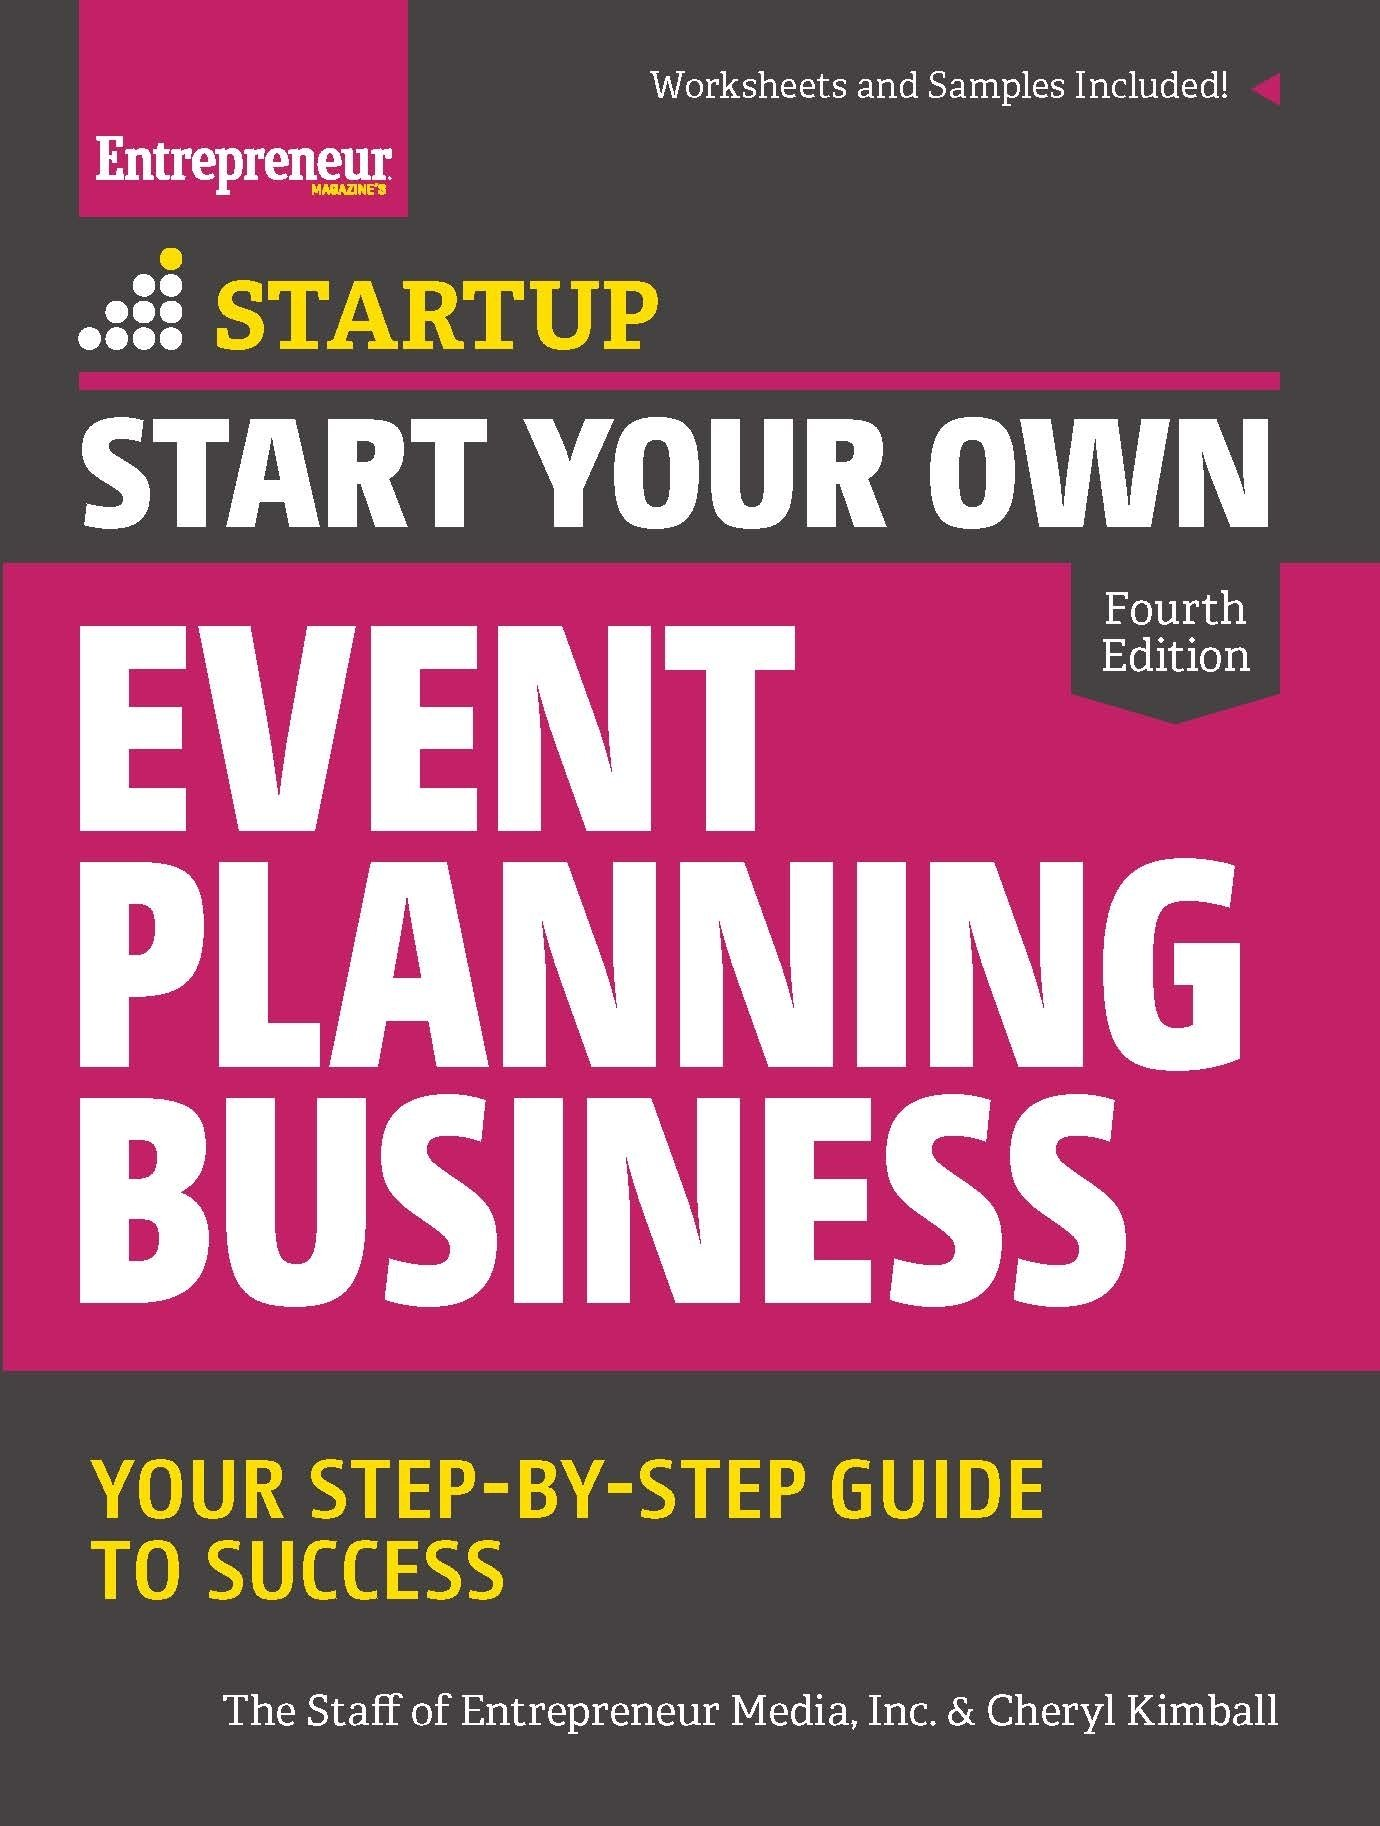 10 Fabulous Ideas For Starting Your Own Business ideas to start your own business from home home design ideas 2020